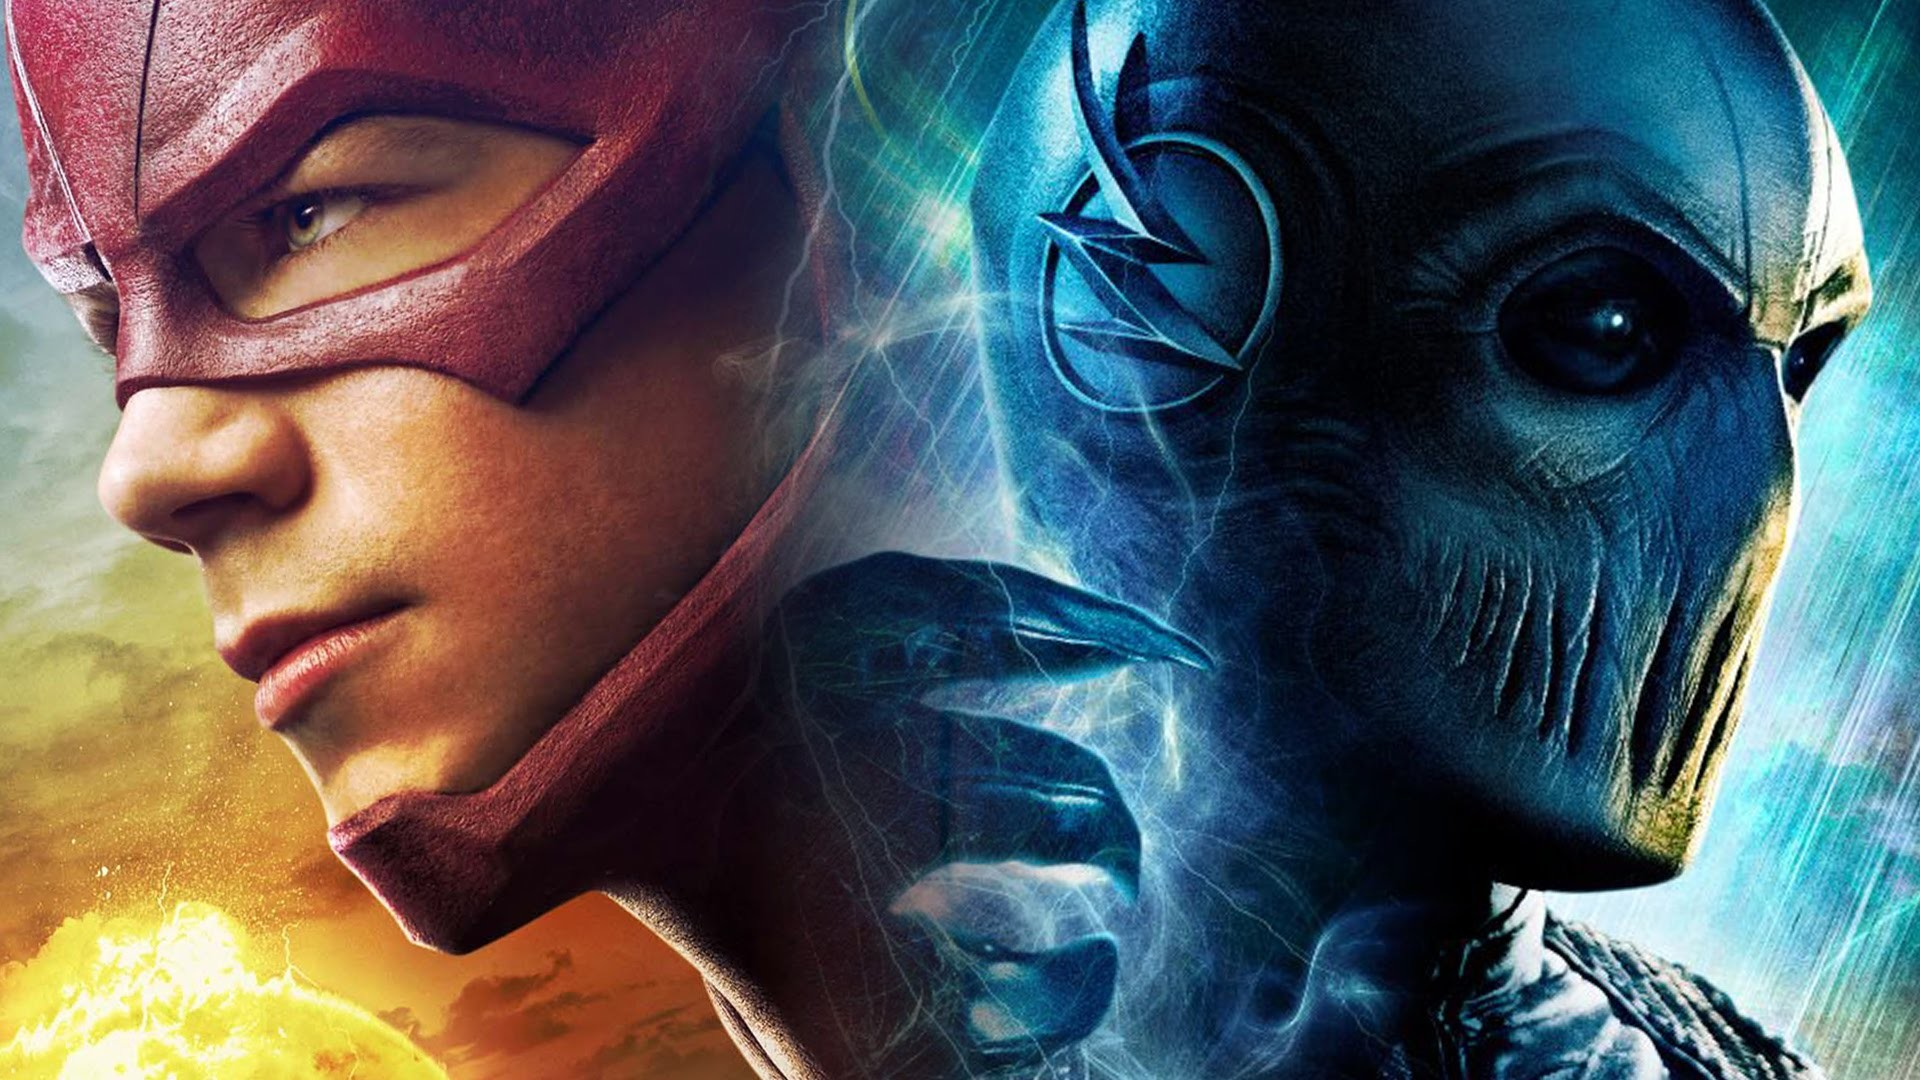 The Flash Hd Wallpaper 77 Images